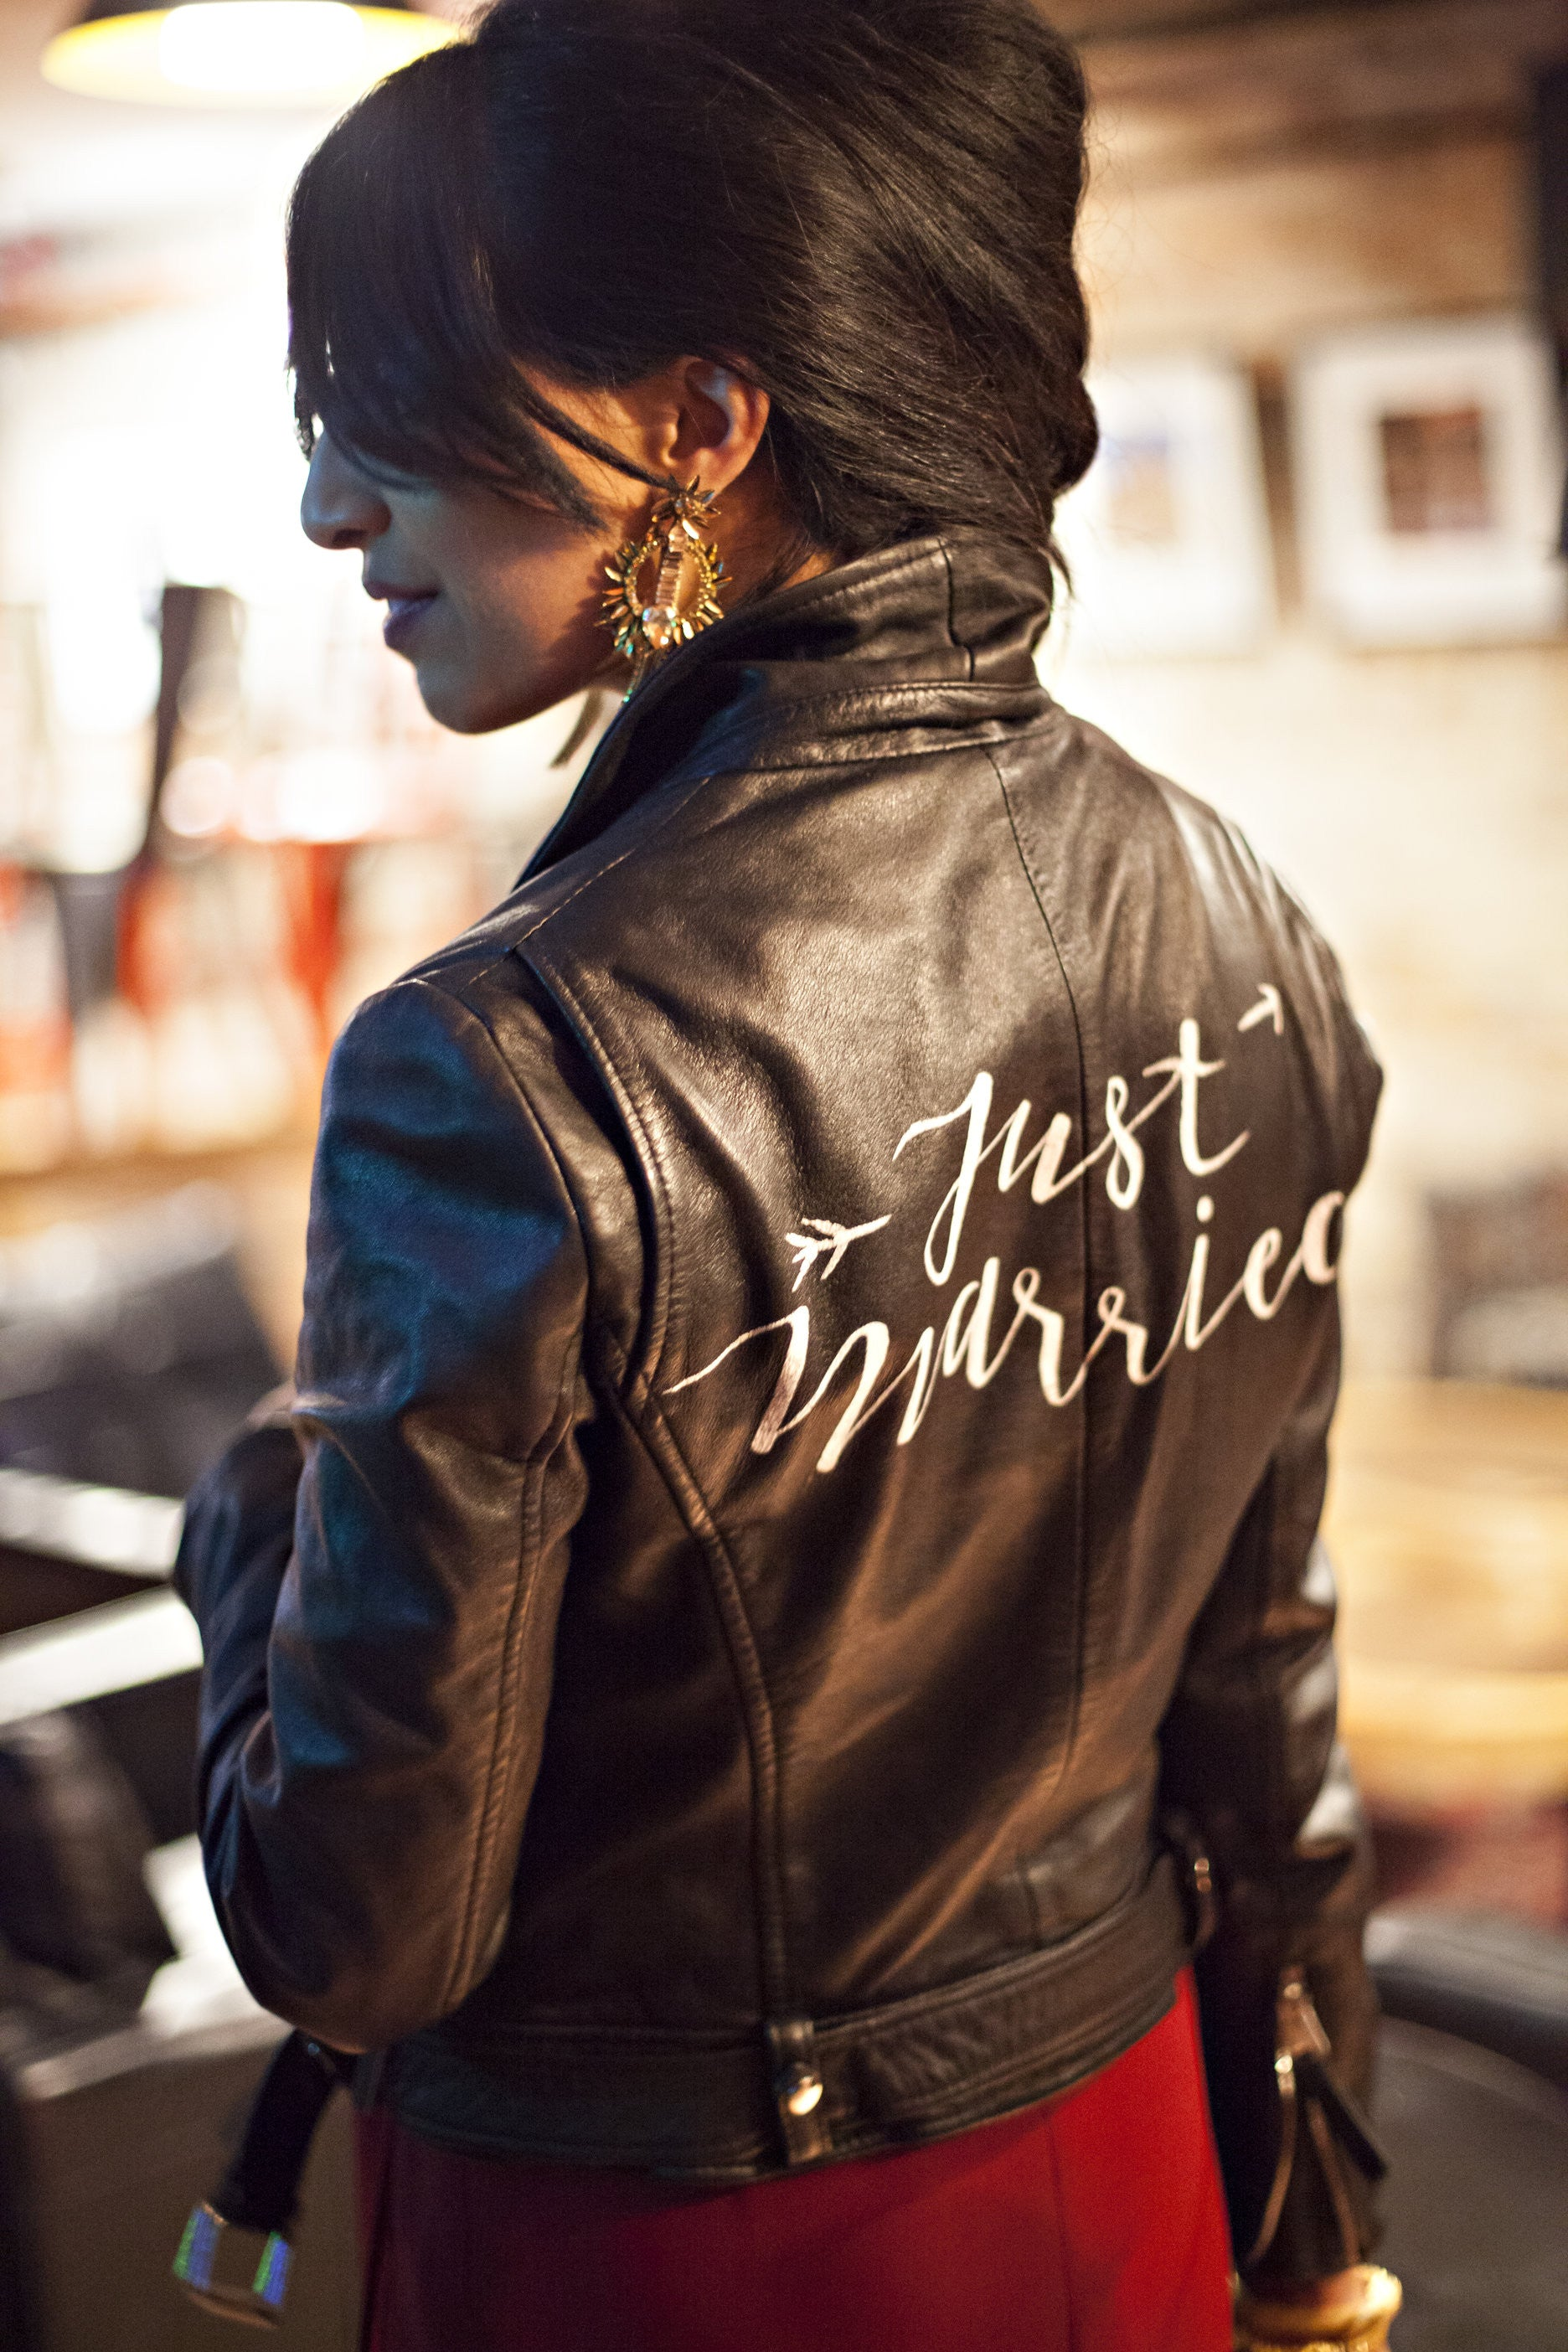 Dockflower Photography - The Just Married Leather Jacket